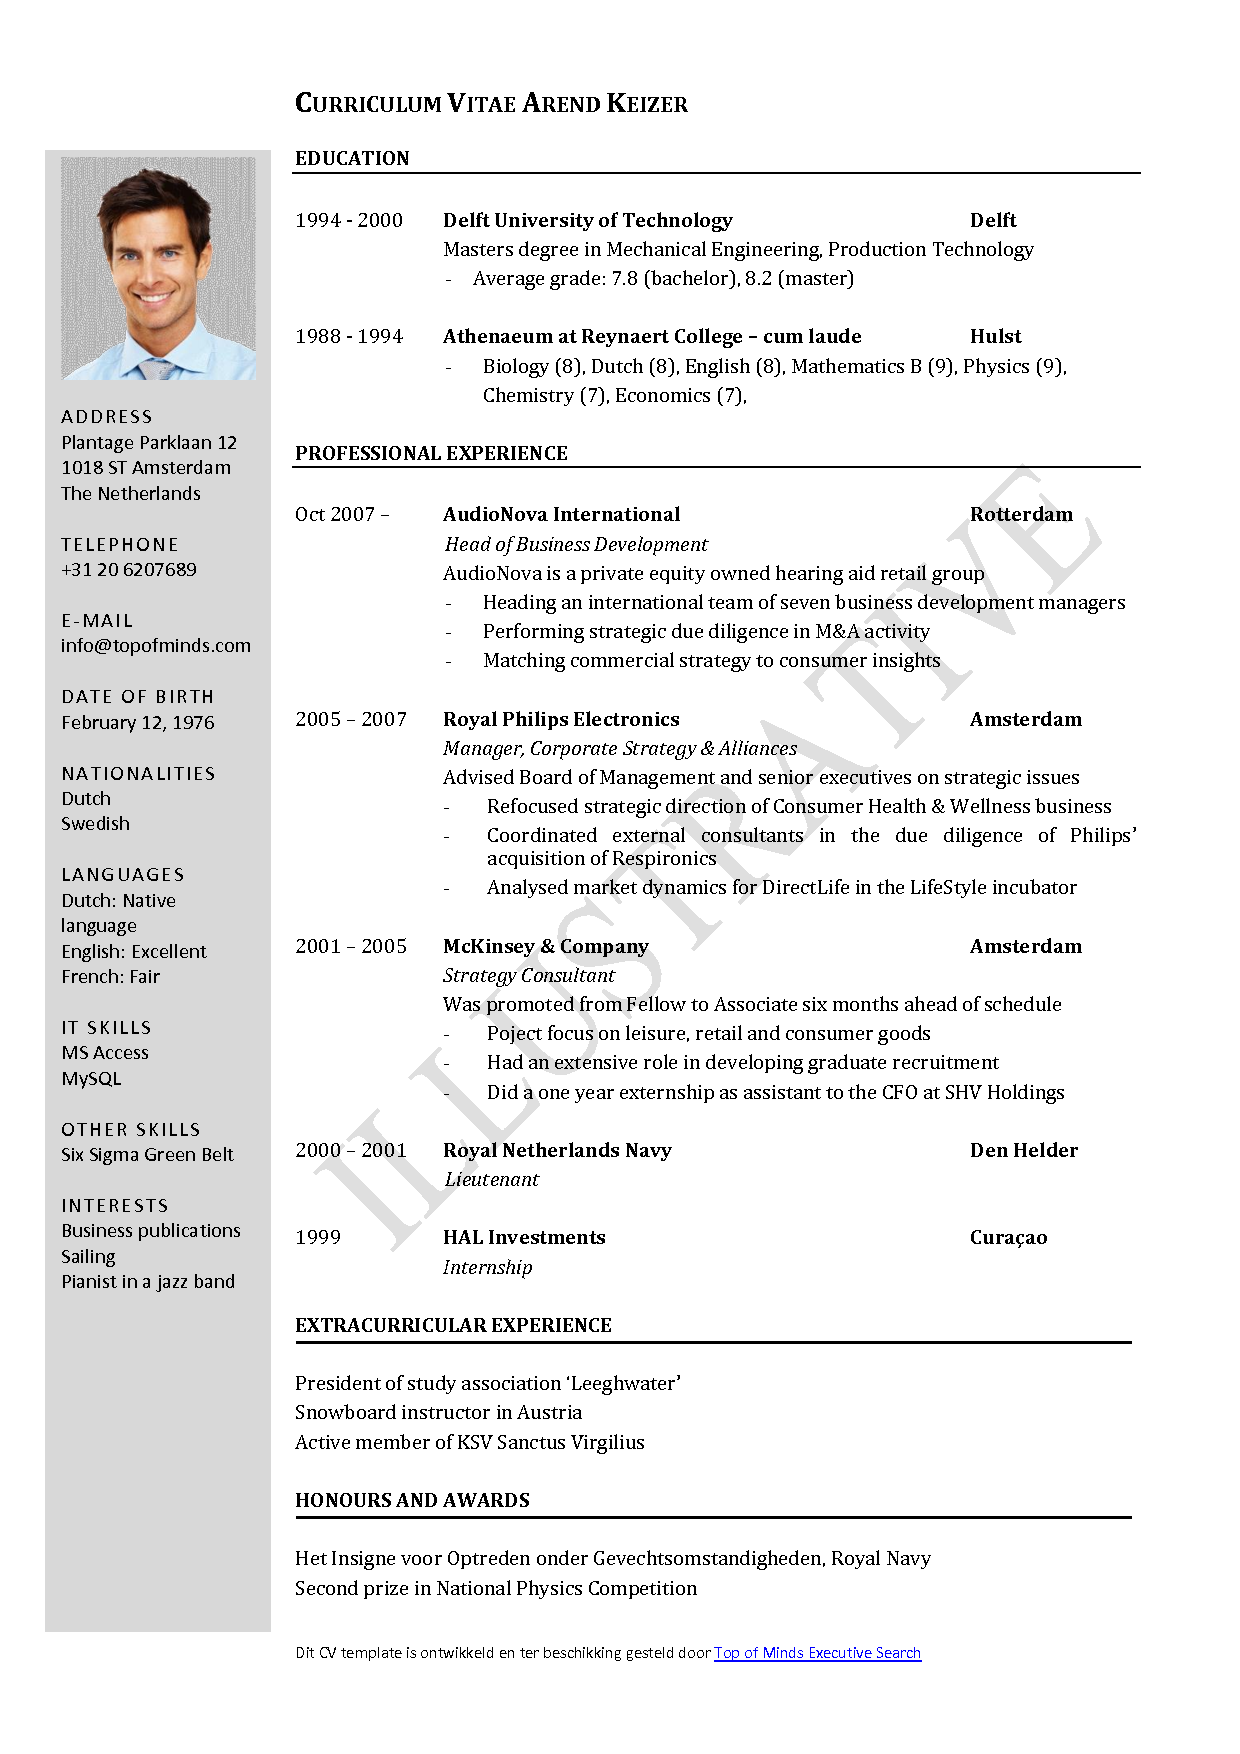 Free curriculum vitae template word download cv template tng free curriculum vitae template word download cv template yelopaper Images